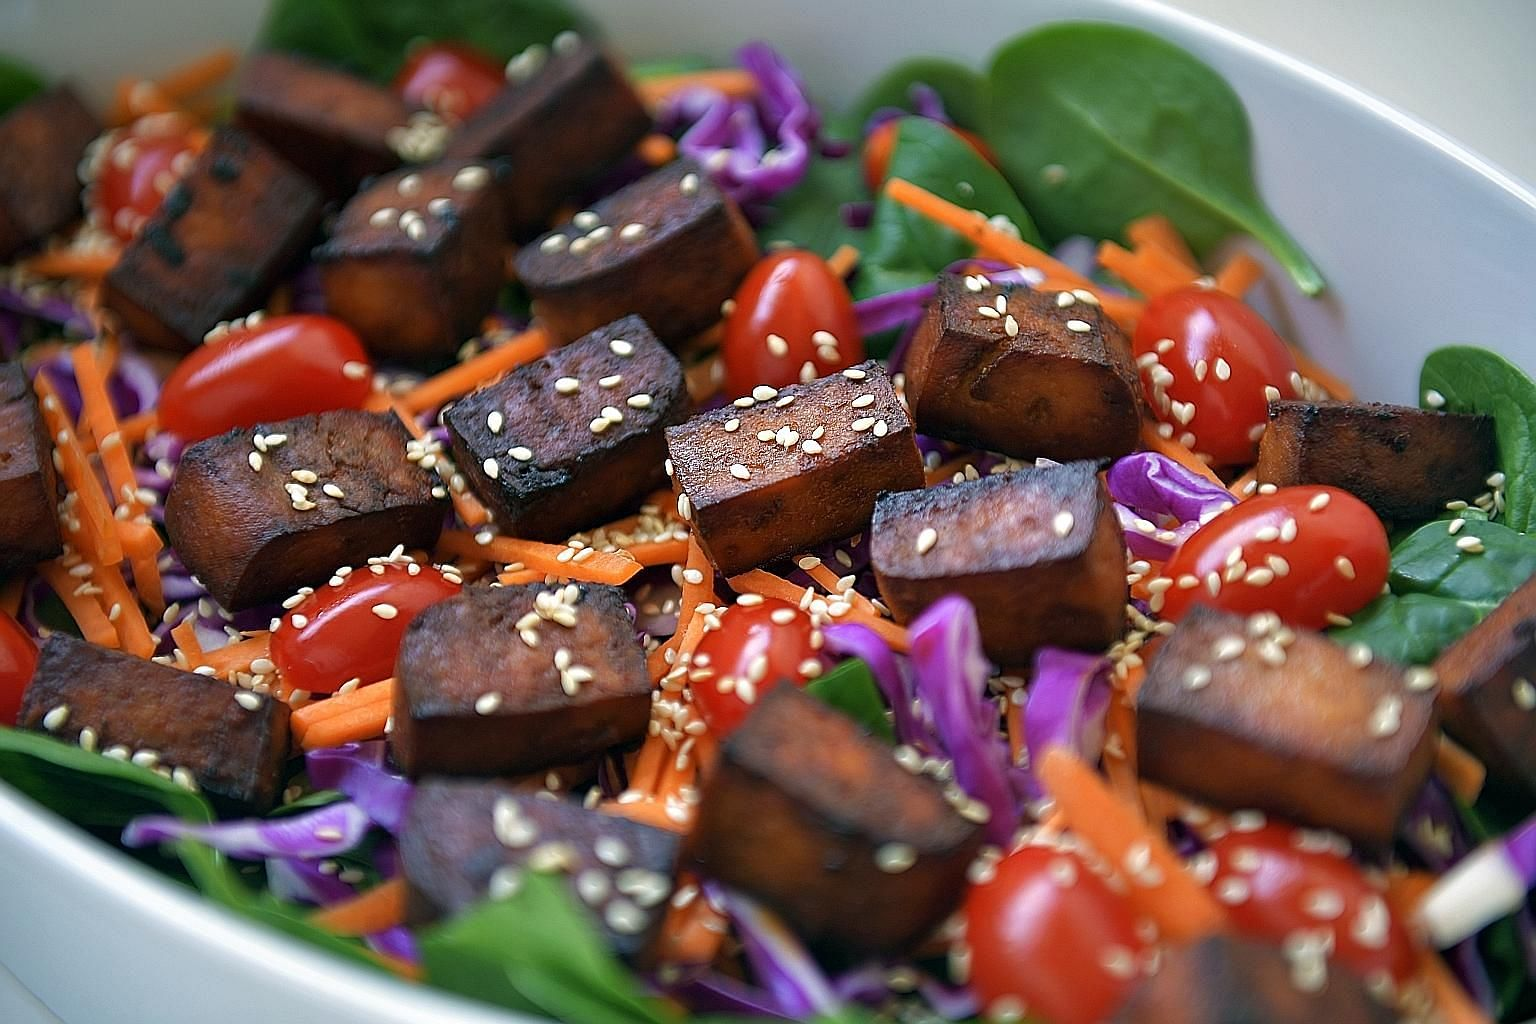 Serve the baked tofu with baby spinach, julienned carrots, purple cabbage and grape tomatoes for a healthy meal.